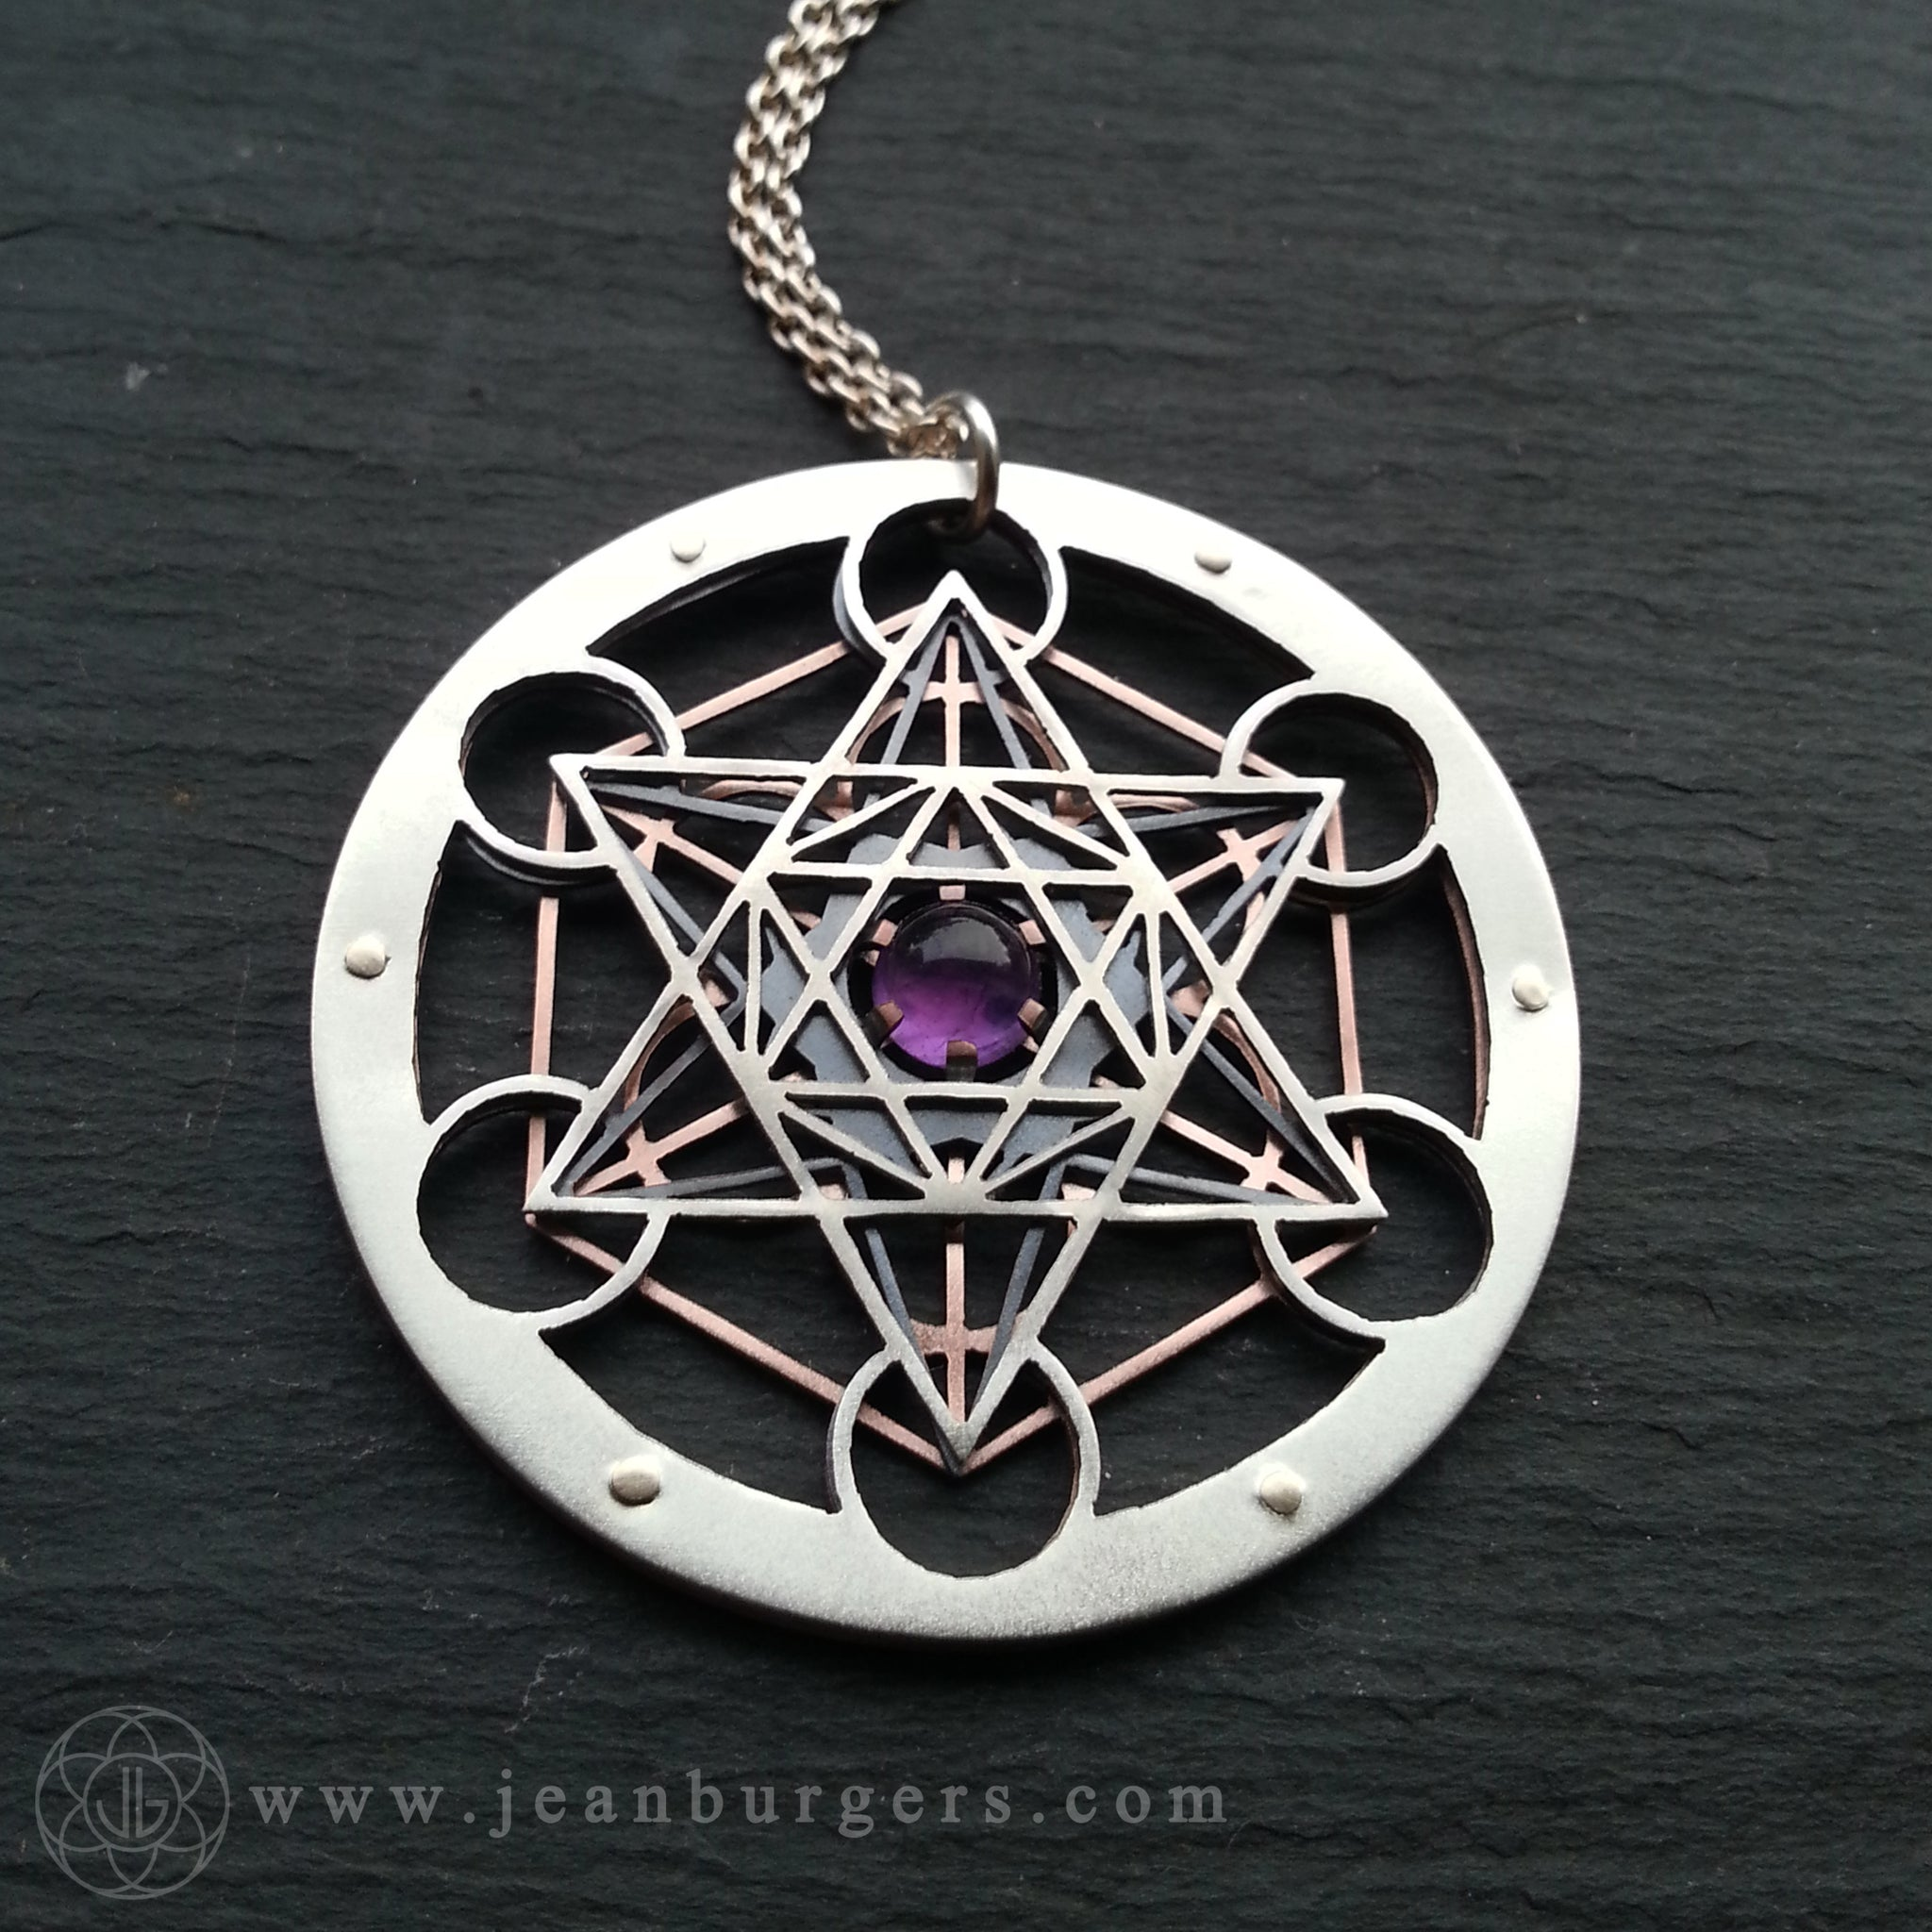 Metatrons cube pendant choose your own gemstone jean burgers amethyst metatrons cube pendant handcrafted by jean burgers jewellery aloadofball Gallery